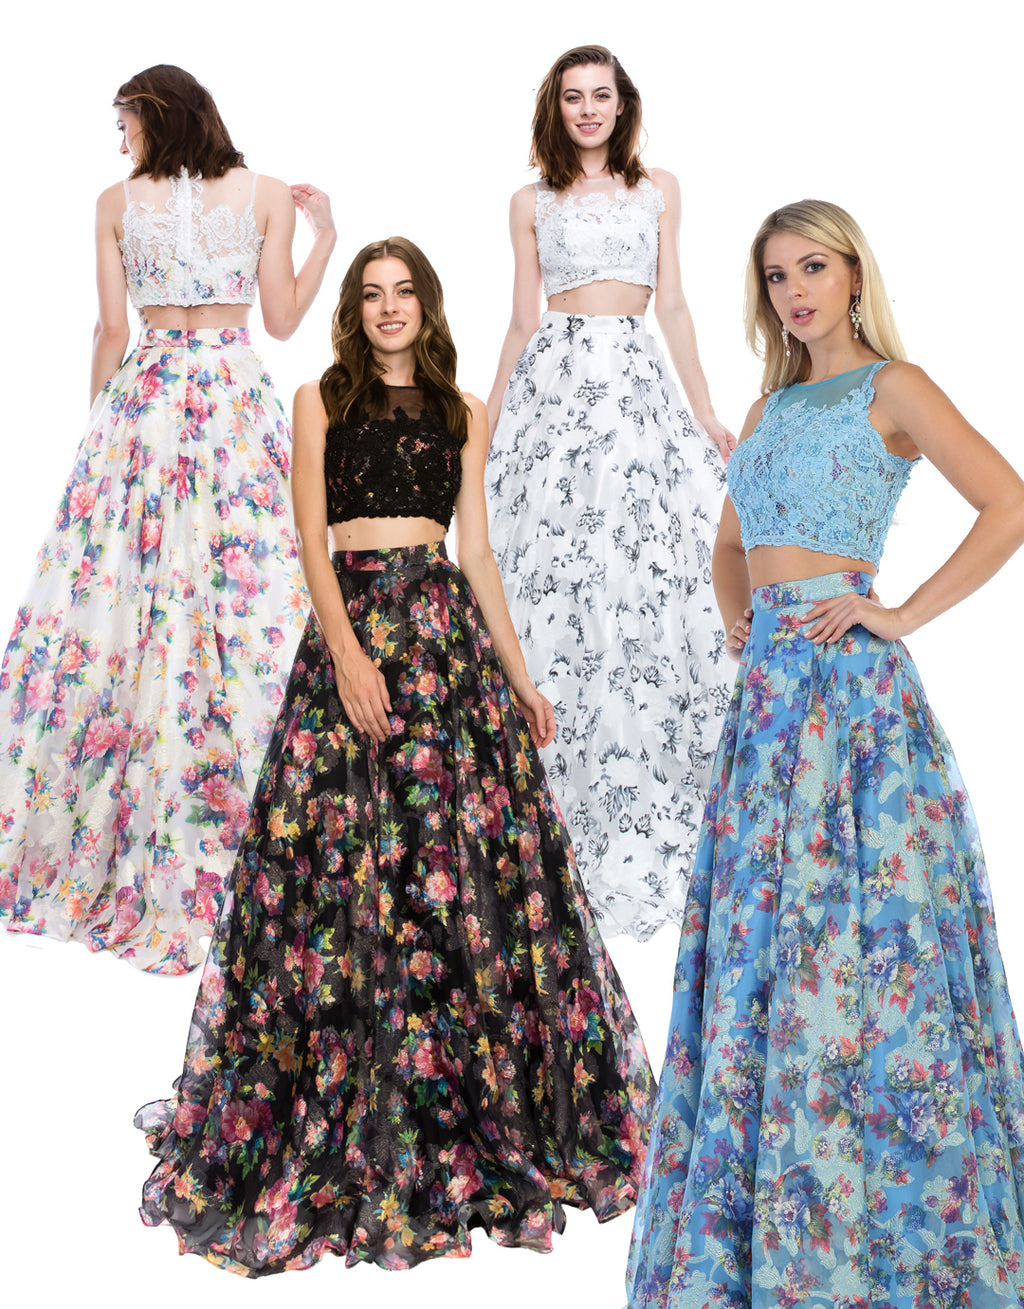 Floral Print Two Piece Ball Gown With Lace Embroidery | Norma Reed